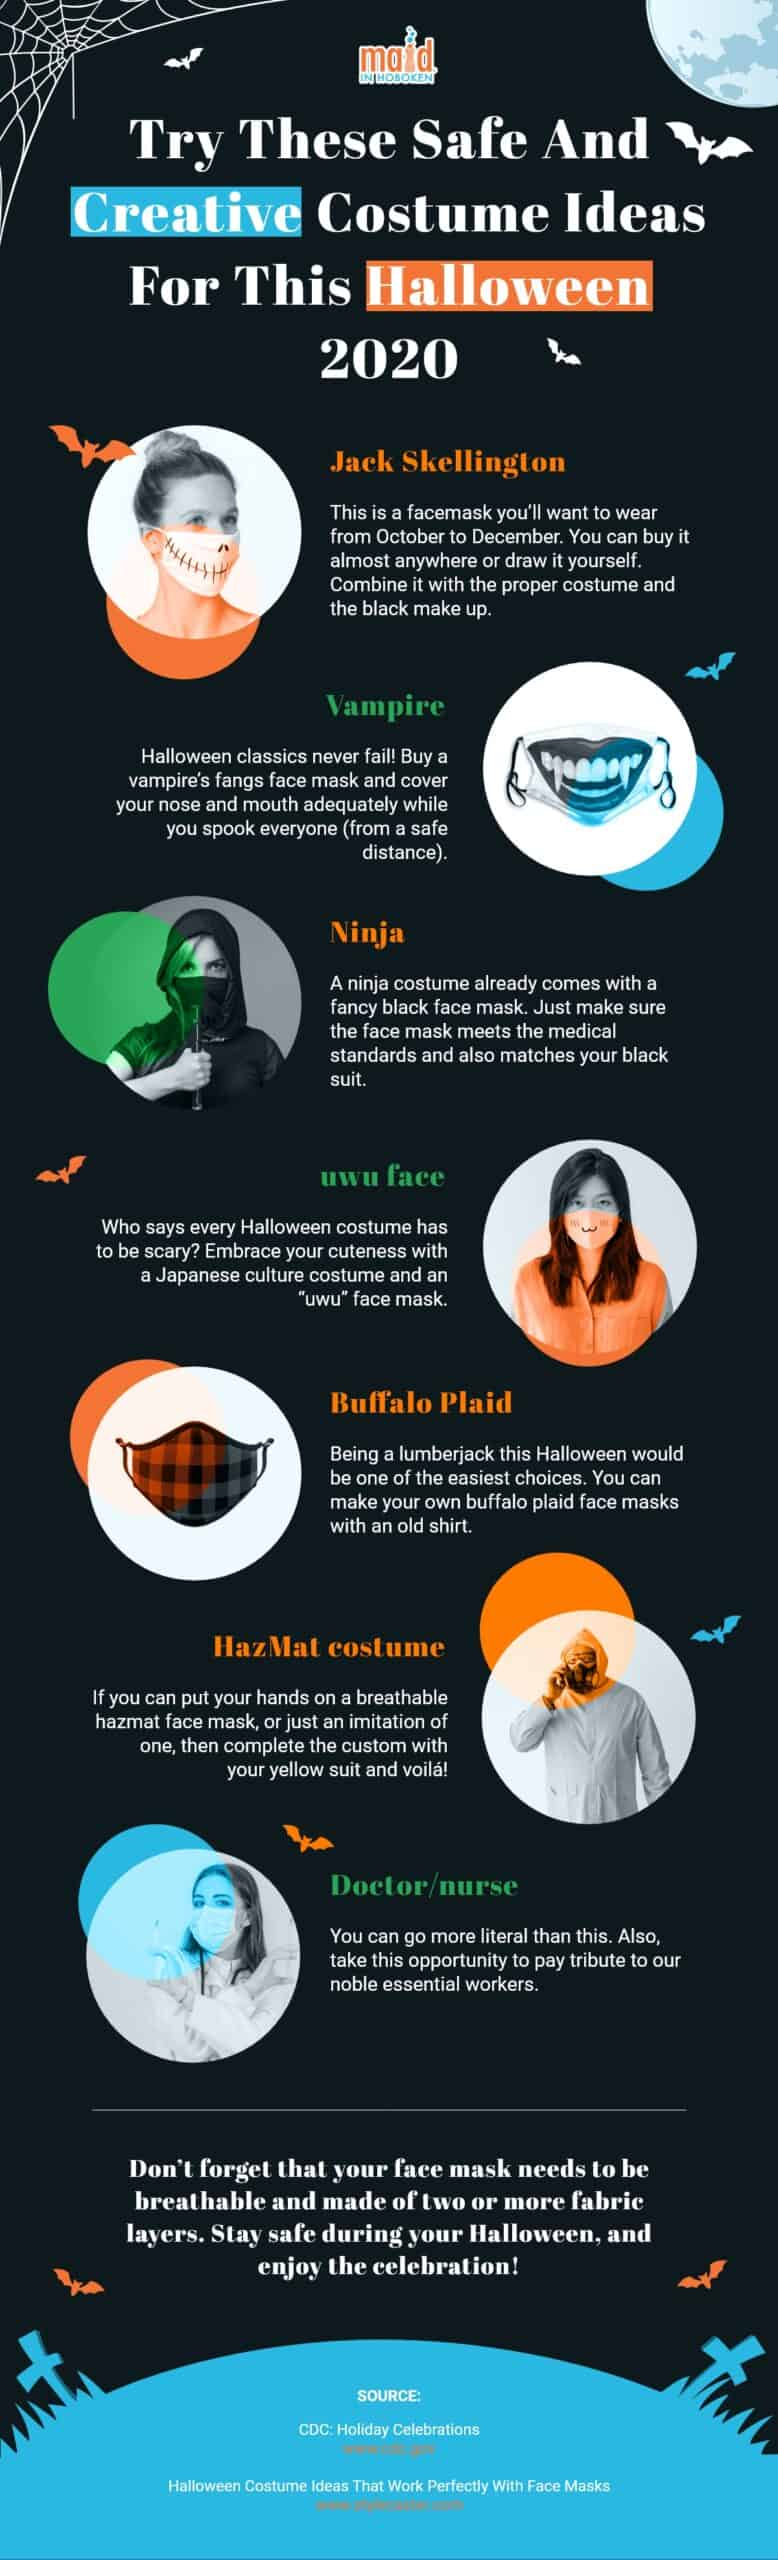 Try These Safe And Creative Costume Ideas For This Halloween 2020